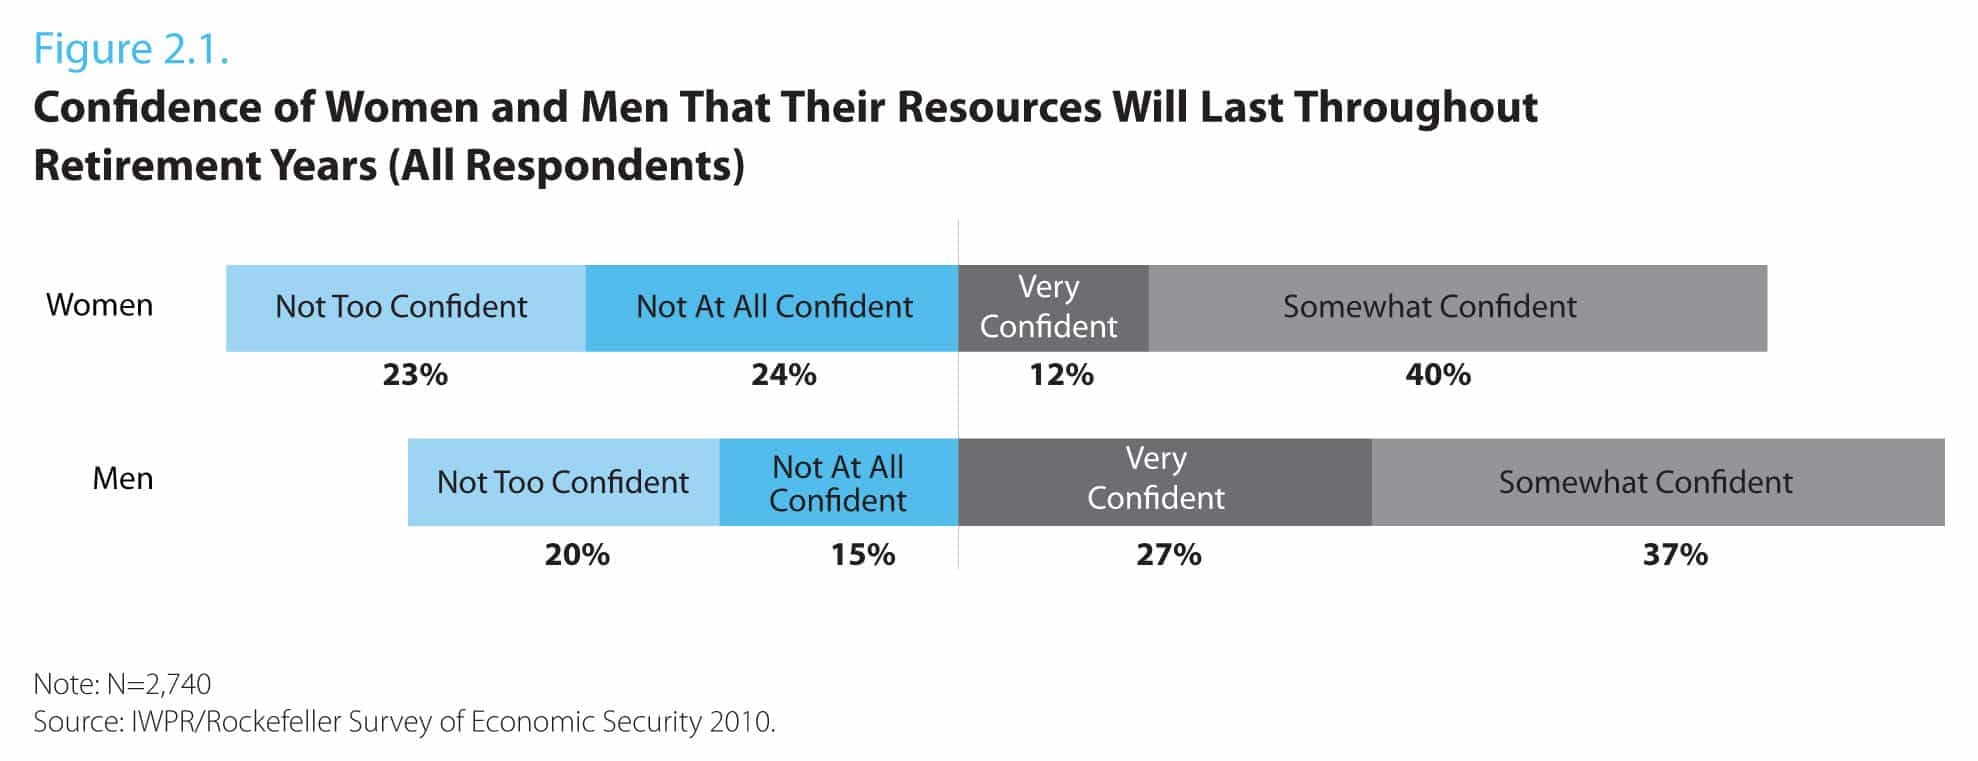 Confidence of Women and Men That Their Resources Will Last throughout Retirement Years